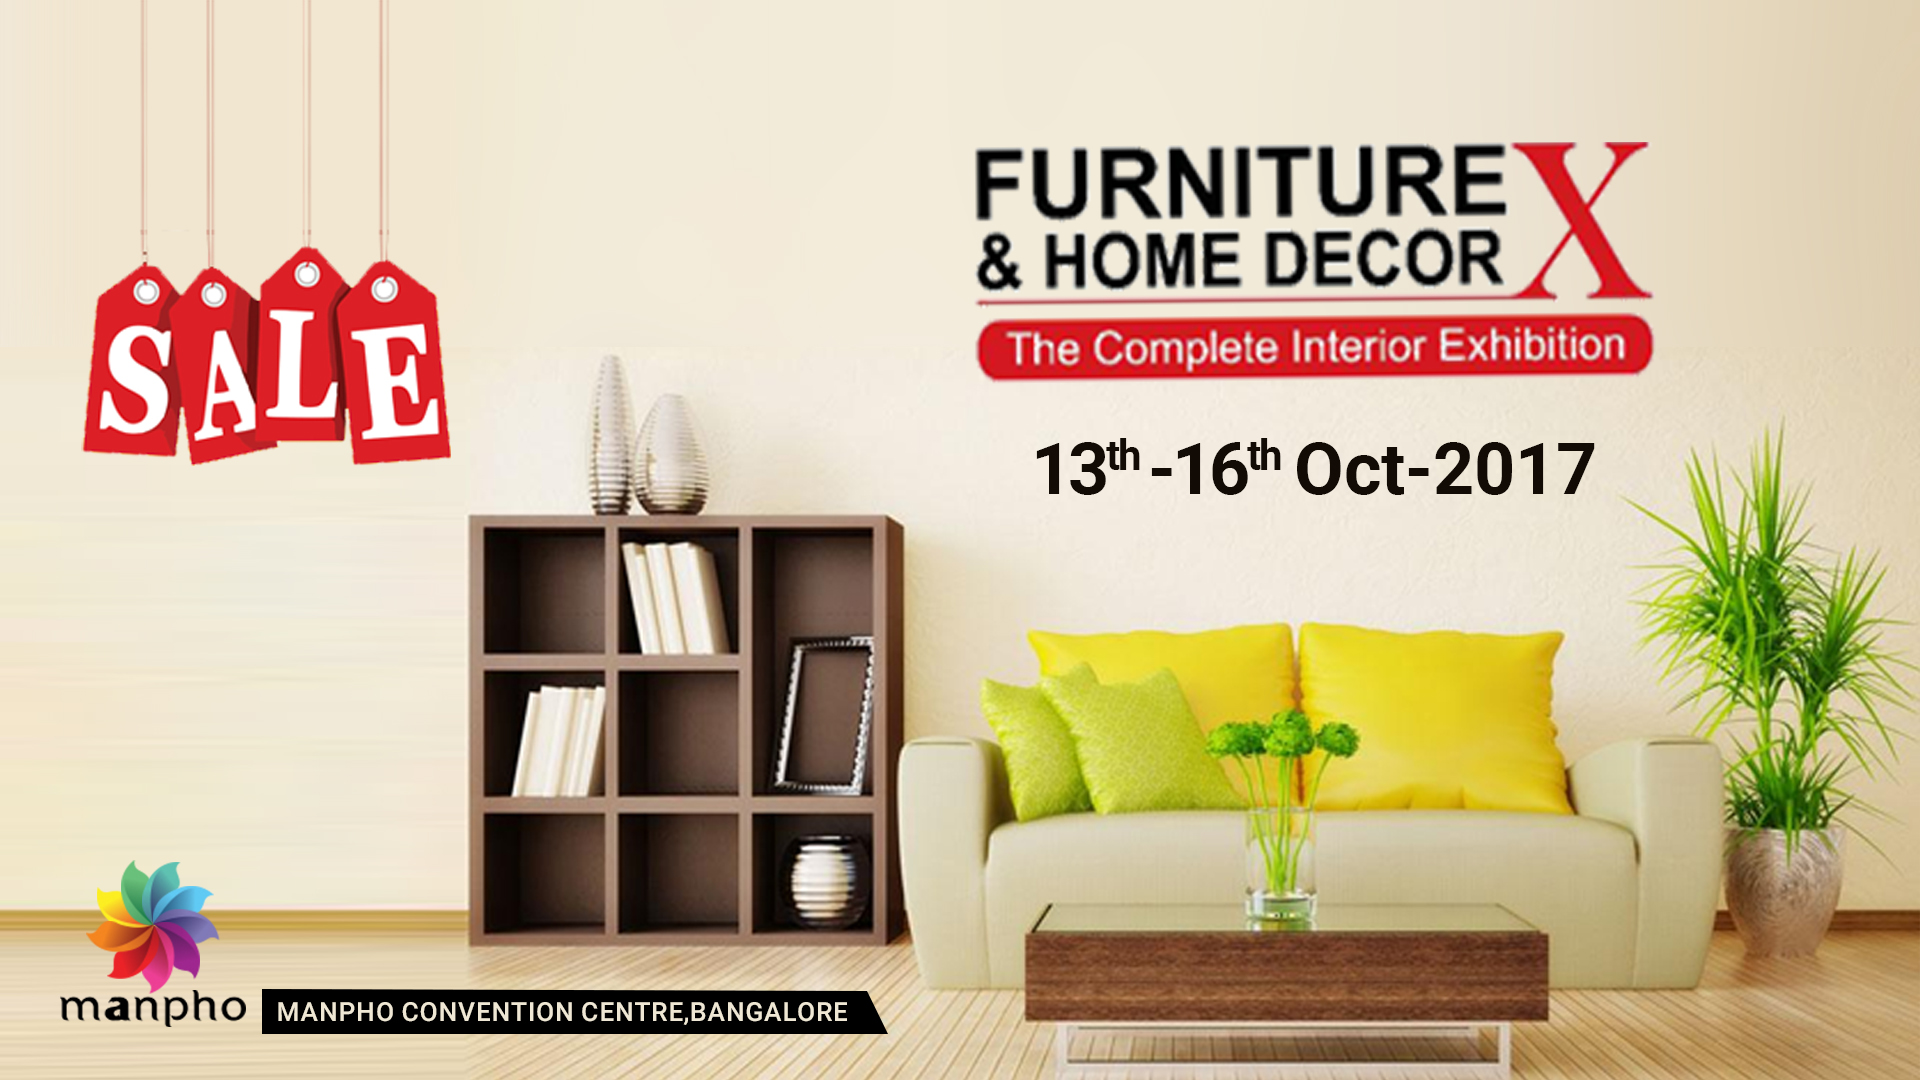 Furniute Event and Home Decor Exhibition from 13th Oct at Bangaore